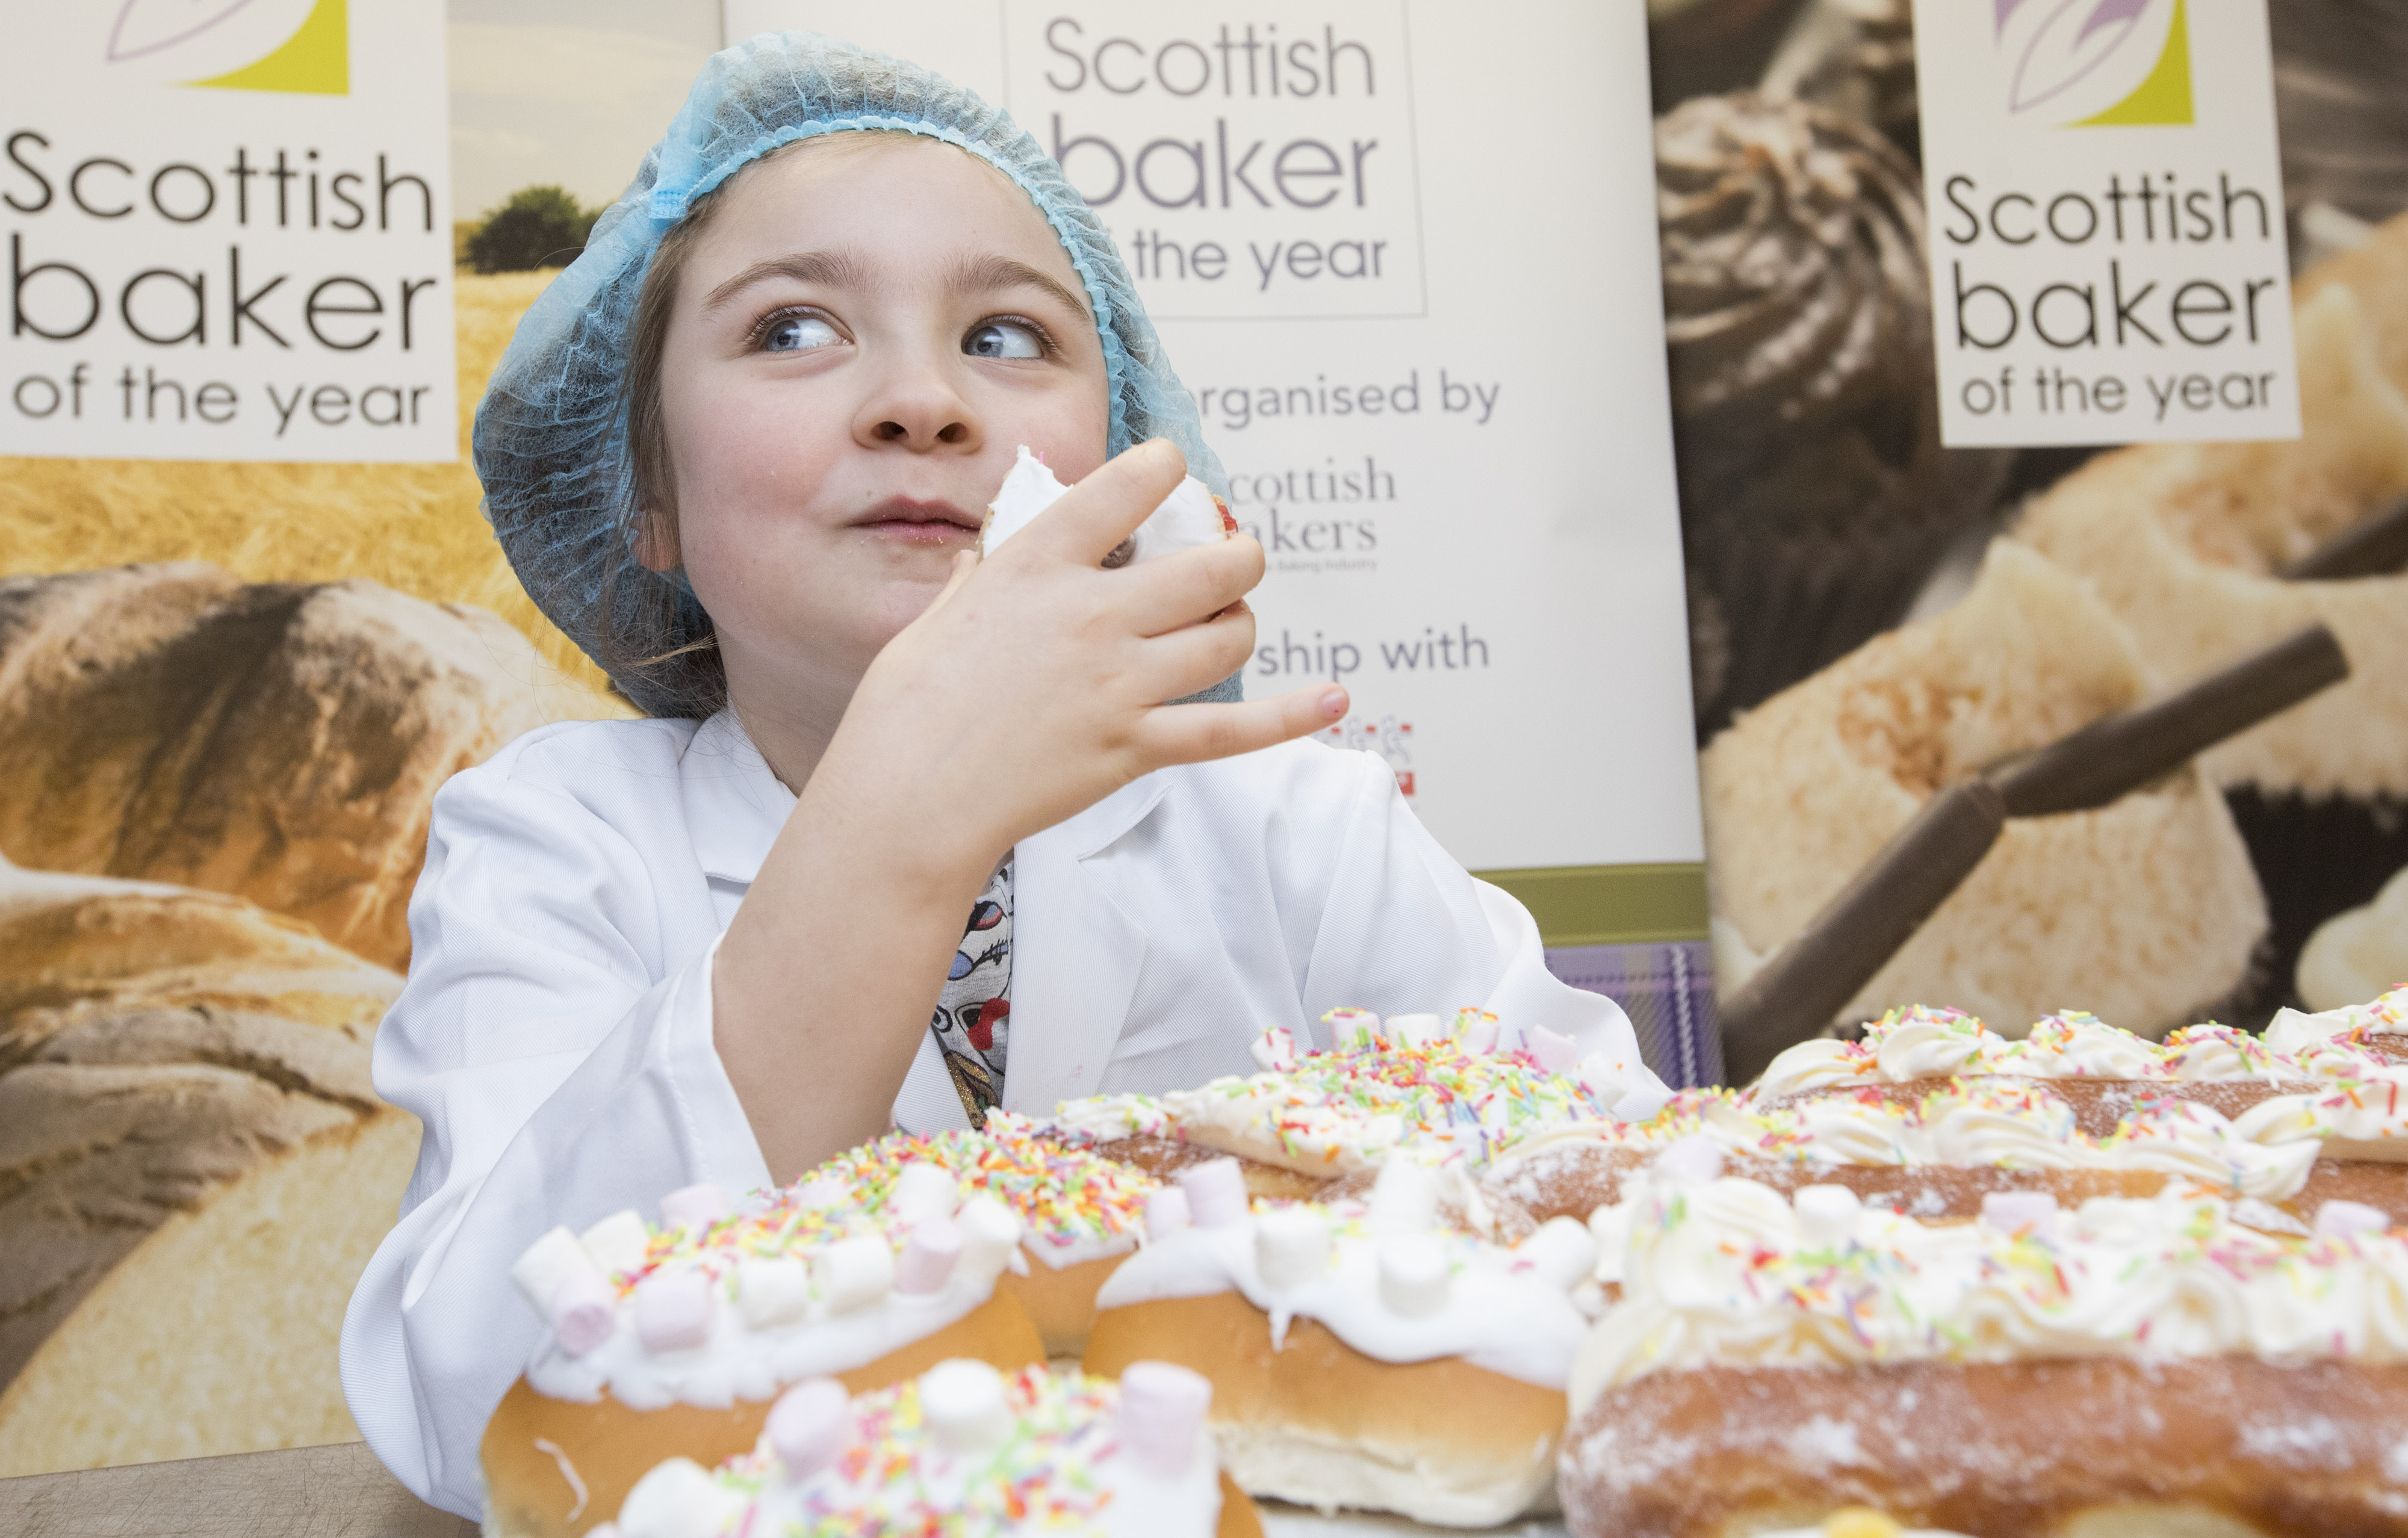 Media release: Save the date - Judges gather once again to select the best baker in the land